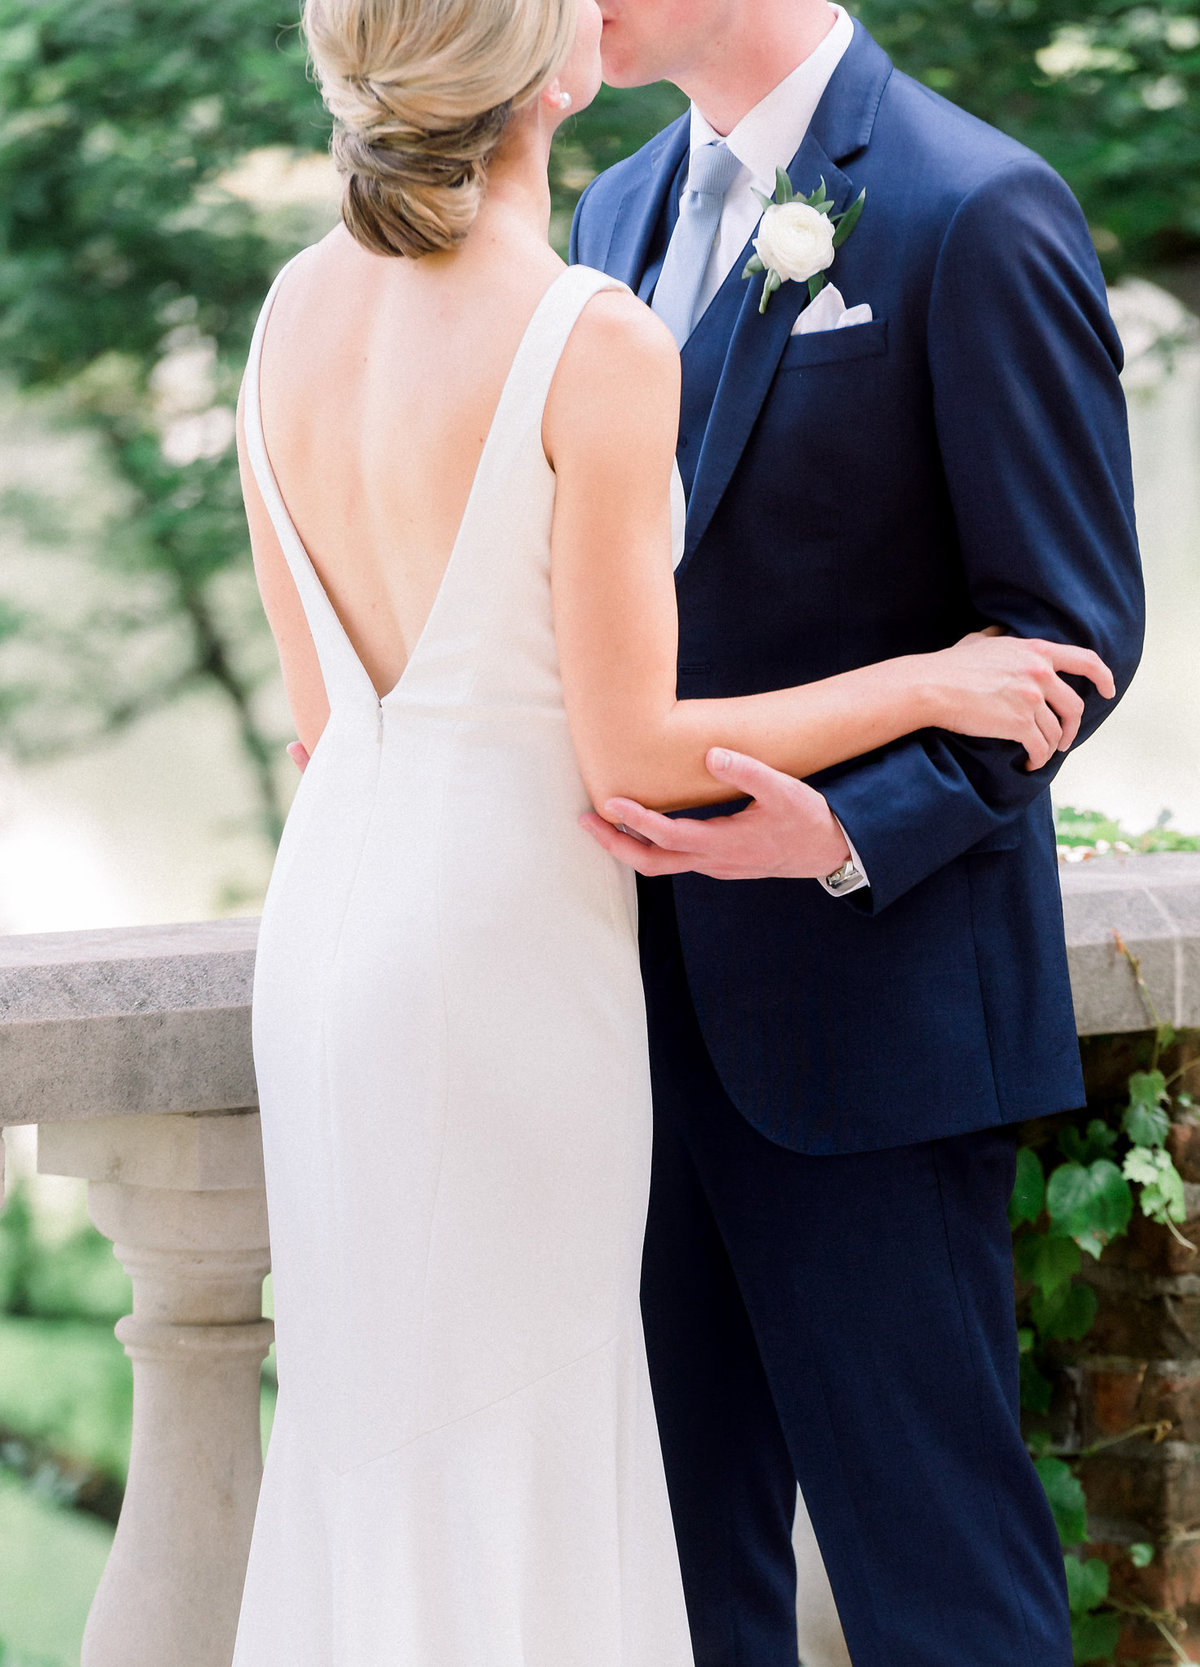 TiffaneyChildsPhotography-ChicagoWeddingPhotographer-Micheala+Tommy-ChicagoBotanicGardenWedding-BridalPortraits-66